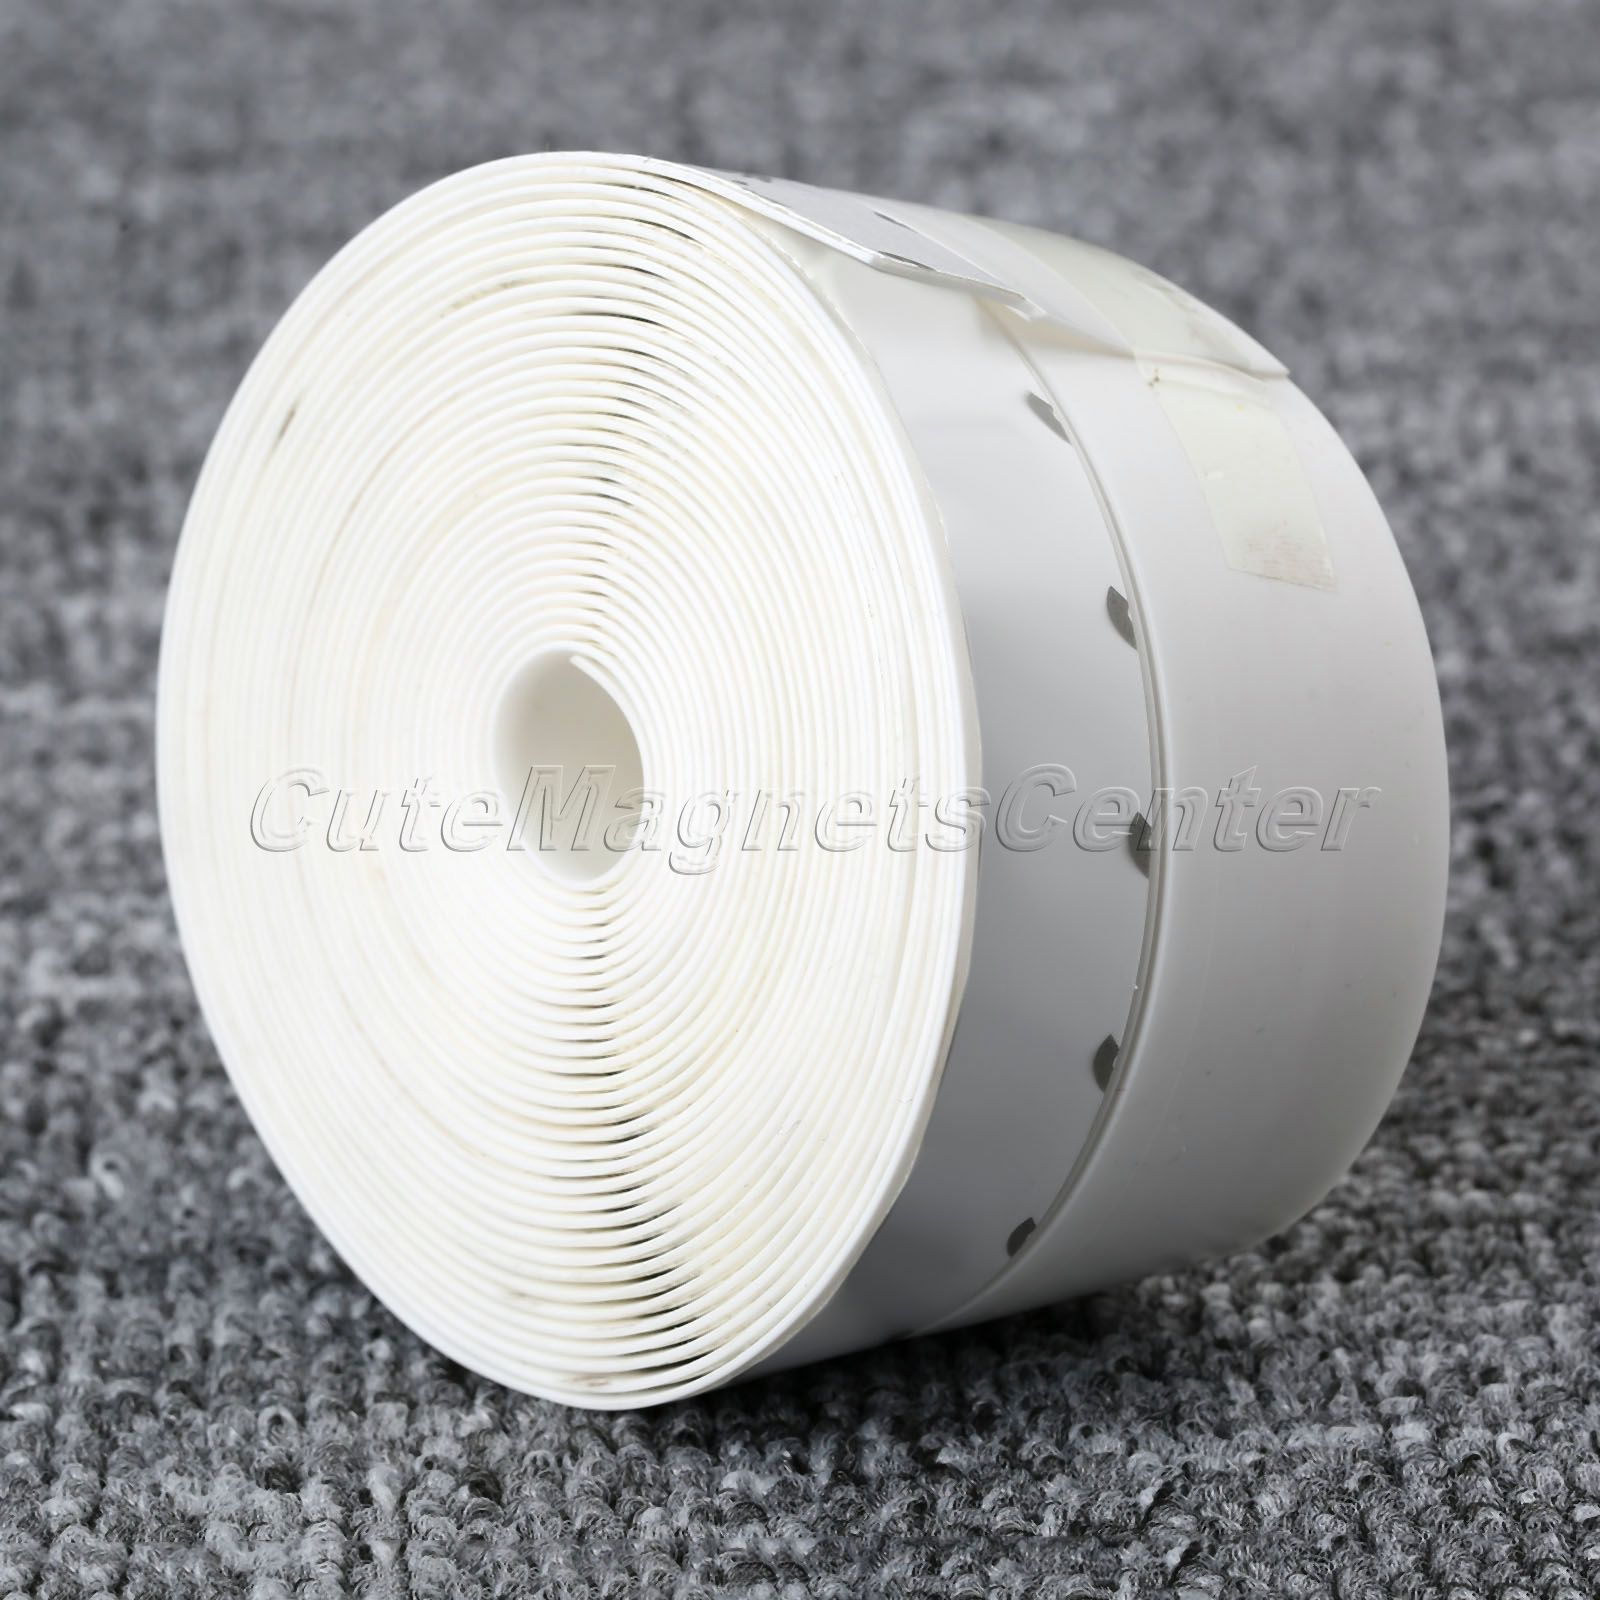 mtsooning 5M Glue Door Window Draught Dust Insect Seal Strip Soundproofing Weatherstrip 45mm Width White Door Accessories